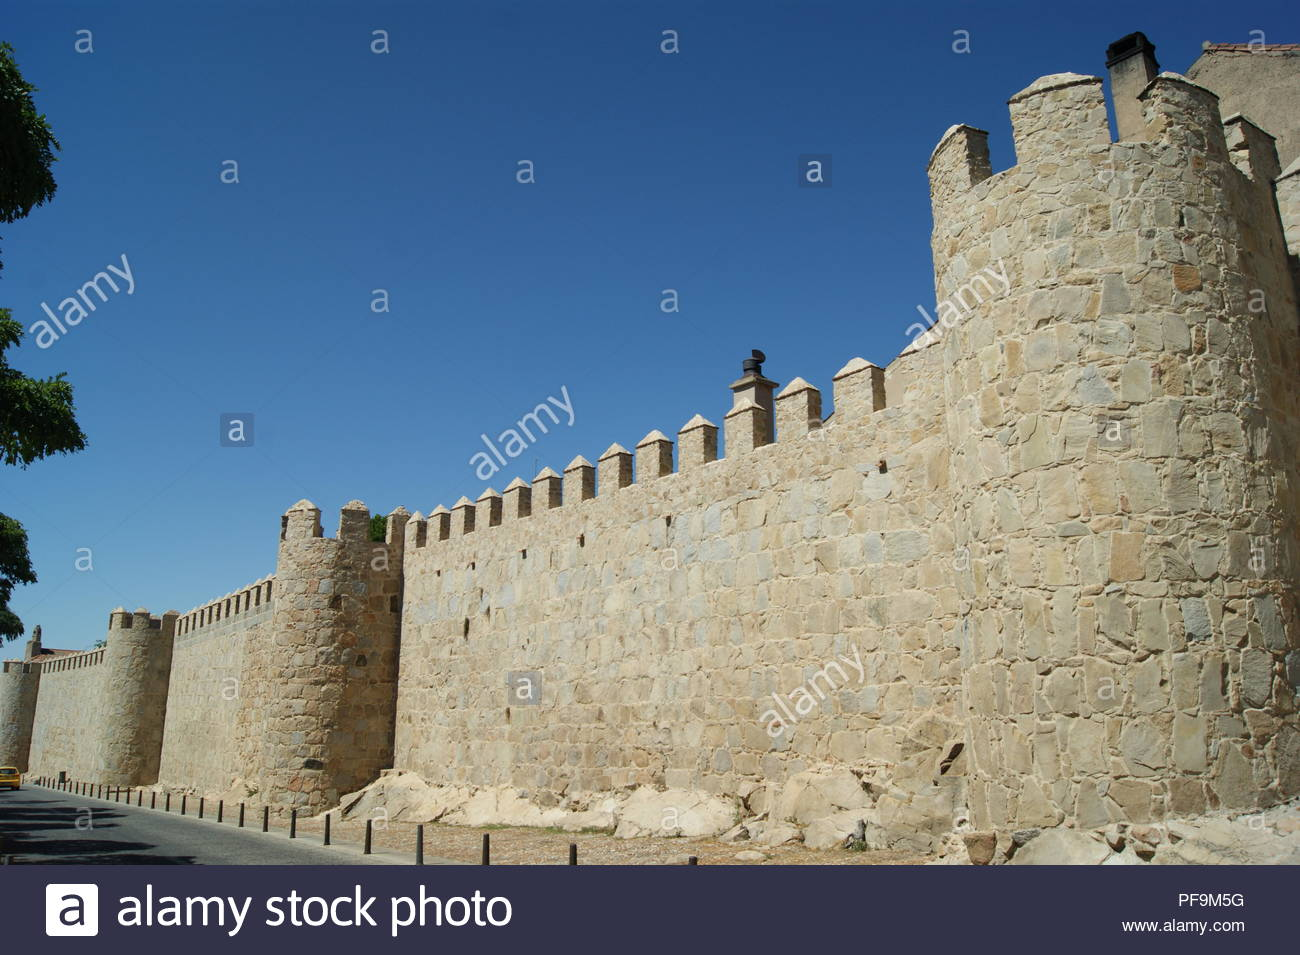 The medieval walls around the city of Avila in Spain. Some of the best preserved medieval fortifications in Europe - Stock Image